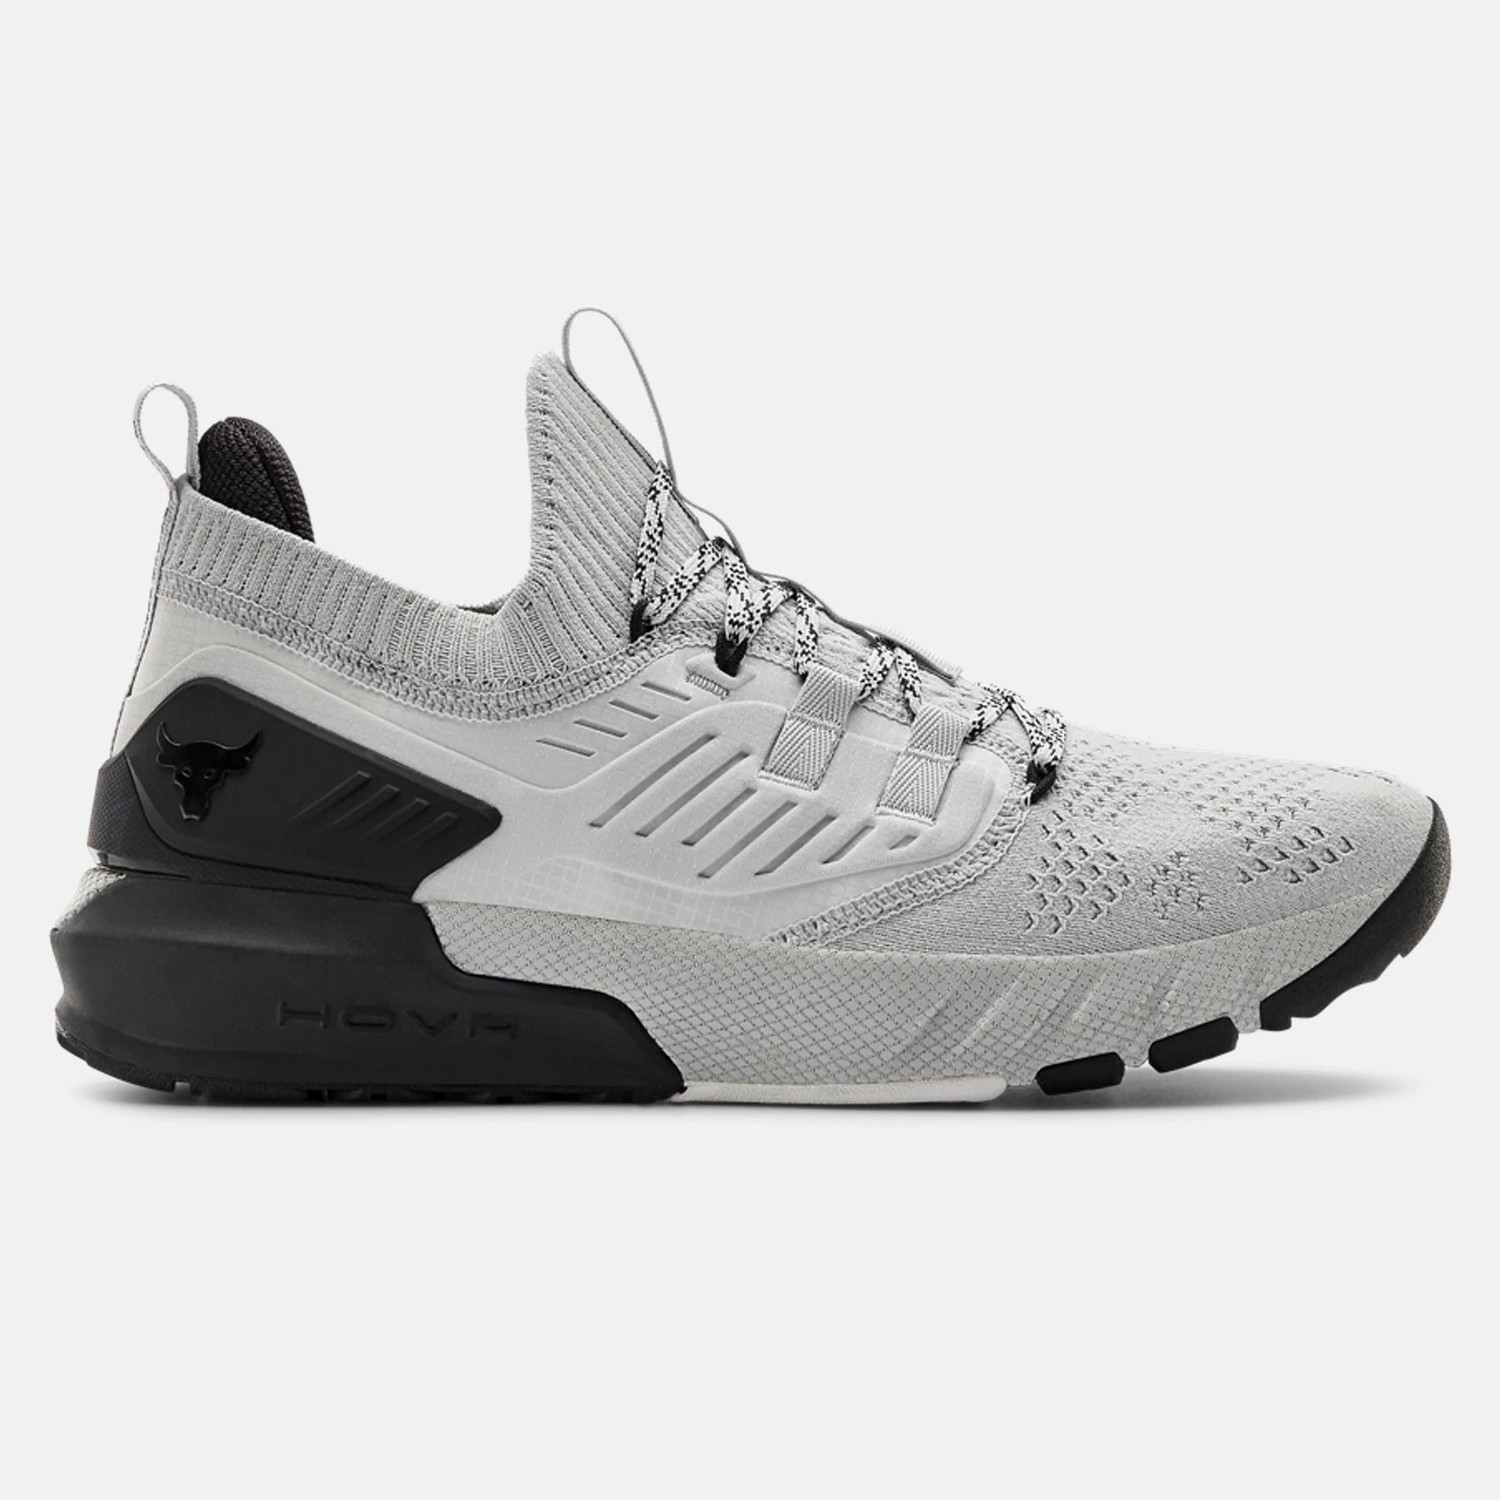 Under Armour Project Rock 3 Ανδρικά Παπούτσια (9000057458_47201)